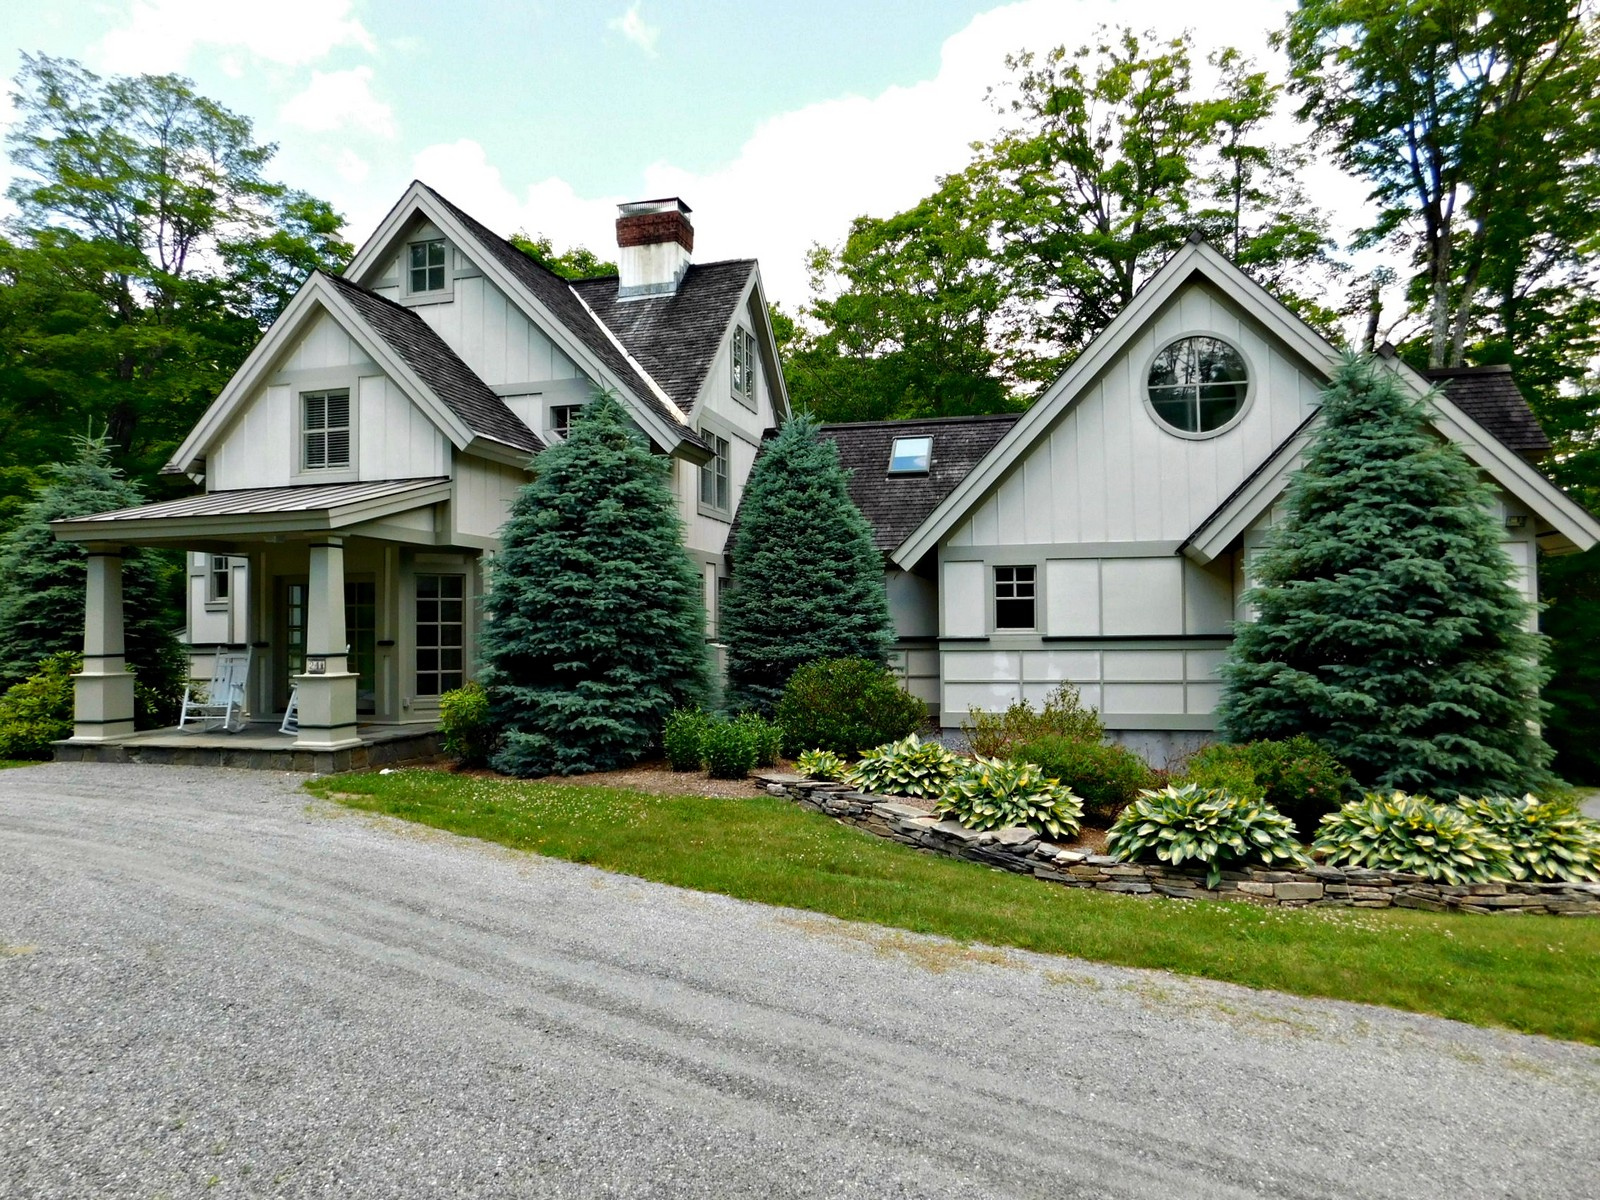 Single Family Home for Sale at 24 Saw Mill Road, Stratton 24 Saw Mill Rd Stratton, Vermont, 05155 United States